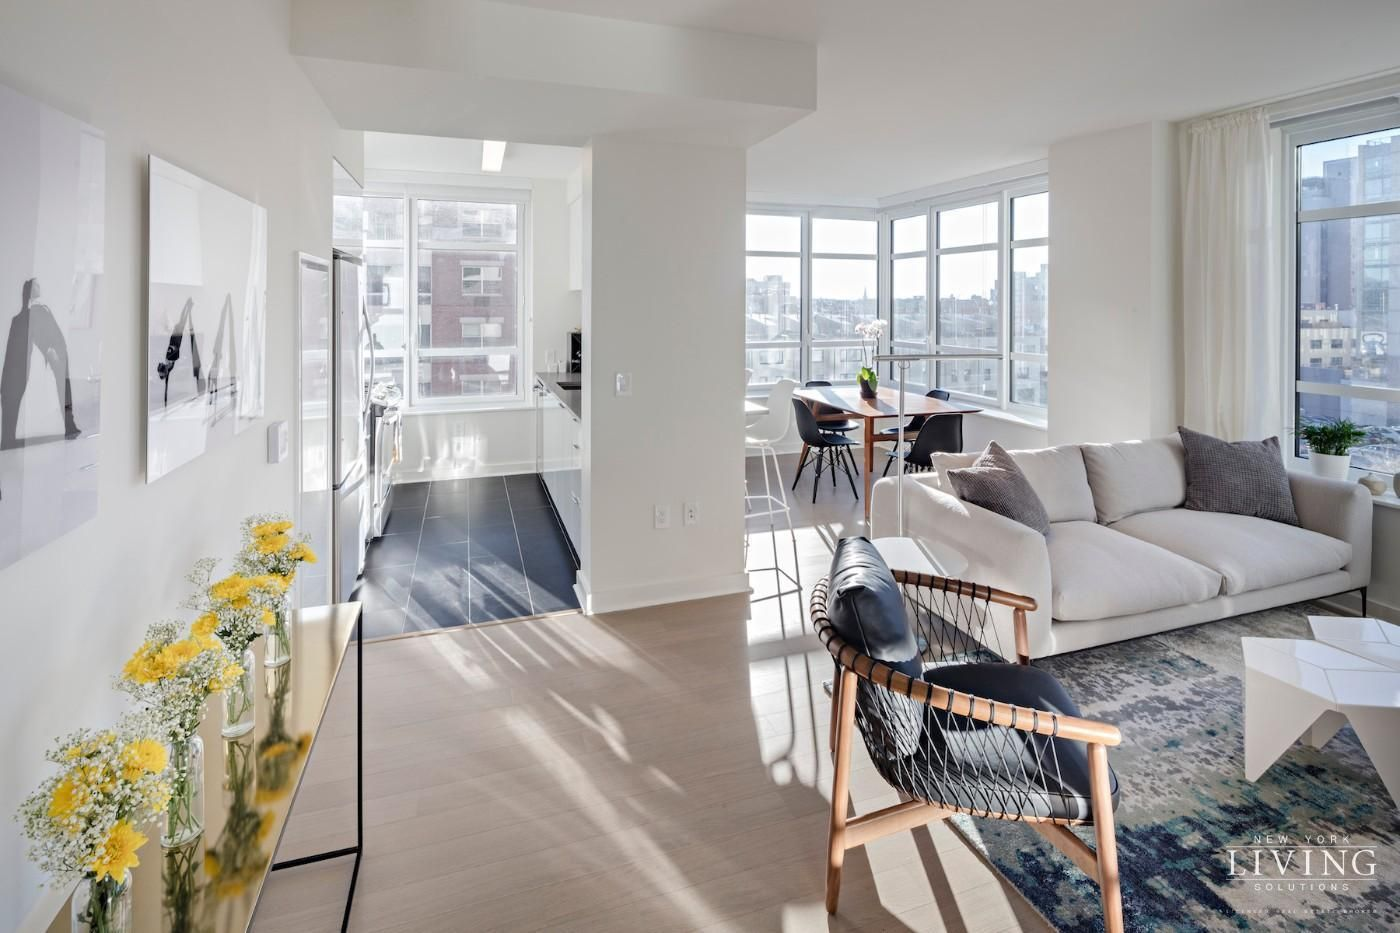 1 Bedroom 1 Bathroom Apartment For Sale In Downtown Brooklyn Brooklyn Apartments For Rent One Bedroom Apartment Apartments For Rent